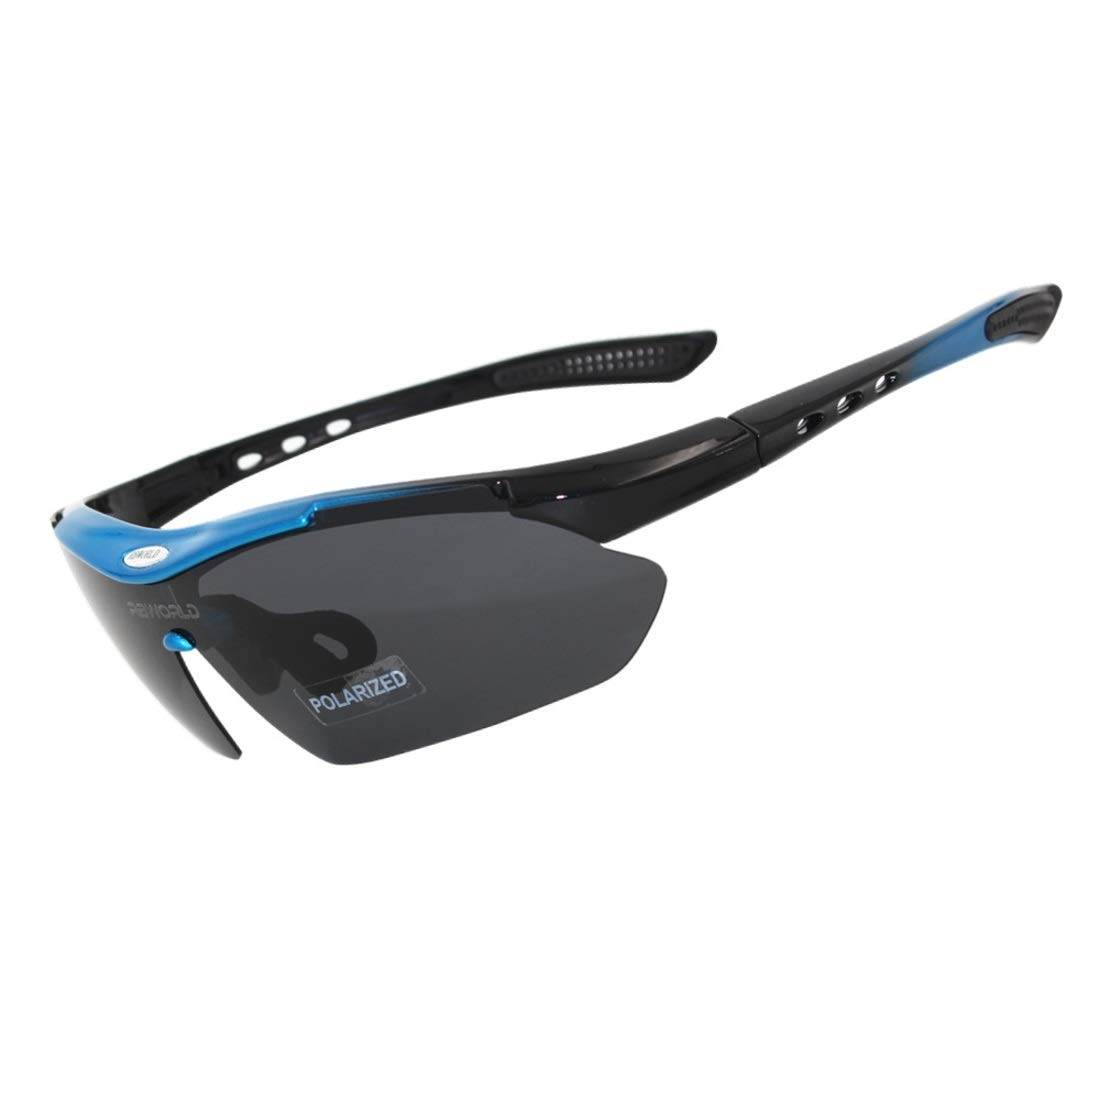 BAOYIT Polarized Outdoor Sports UV400 Men and Women Bicycle Glasses Windproof Riding Glasses for Women Men (Color : Blue) by BAOYIT